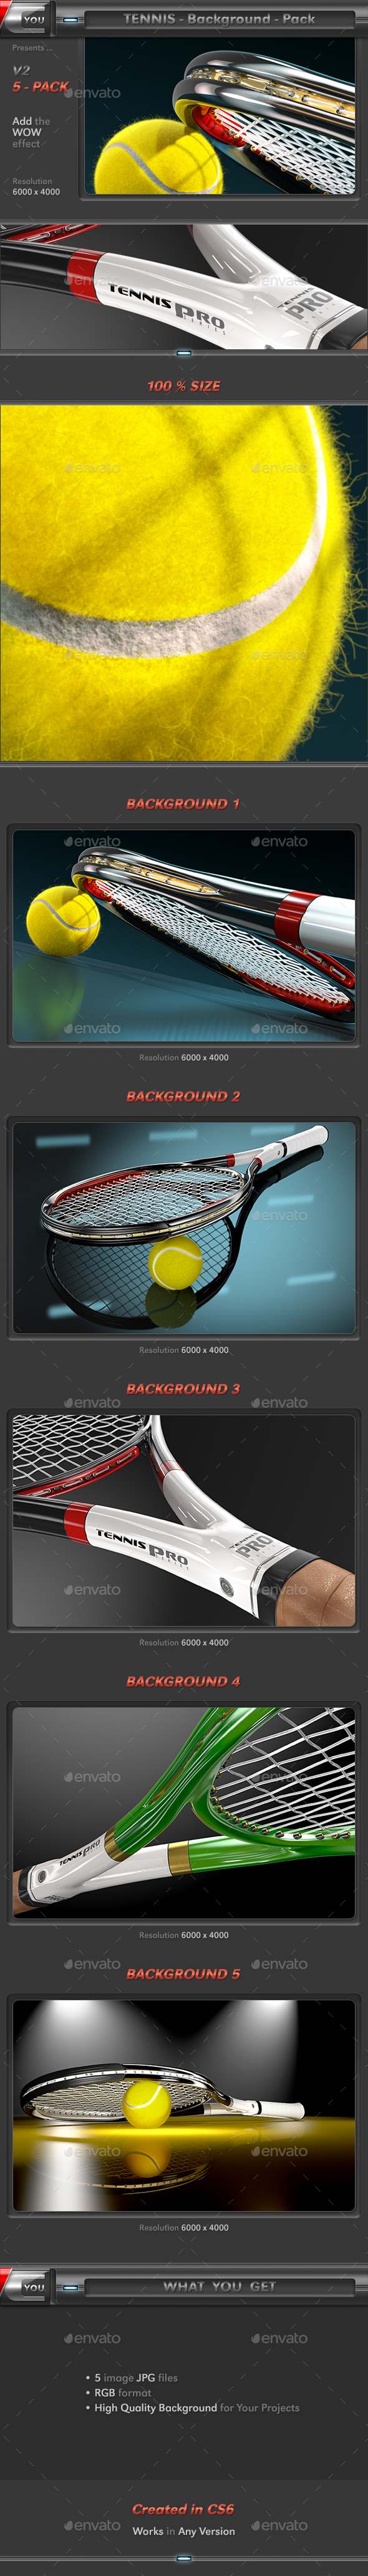 Tennis Background Pack 2 - 3D Backgrounds